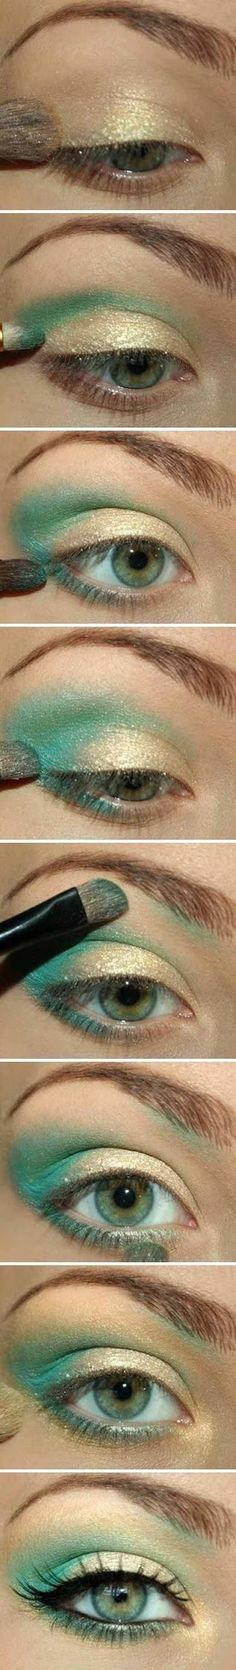 35 Glitter Eye Makeup Tutorials - Mermaid Eye Makeup - Step By Step DIY Glitter Eye Make Up Tutorials that WIll Make Yours Eyes Sparkle - Silver and Gold Linda Hallberg Looks, Awesome Eyeshadow Products, Urban Decay and Looks for Your Eyebrows to Make You Look Like a Beauty - thegoddess.com/glitter-eye-makeup-tutorials